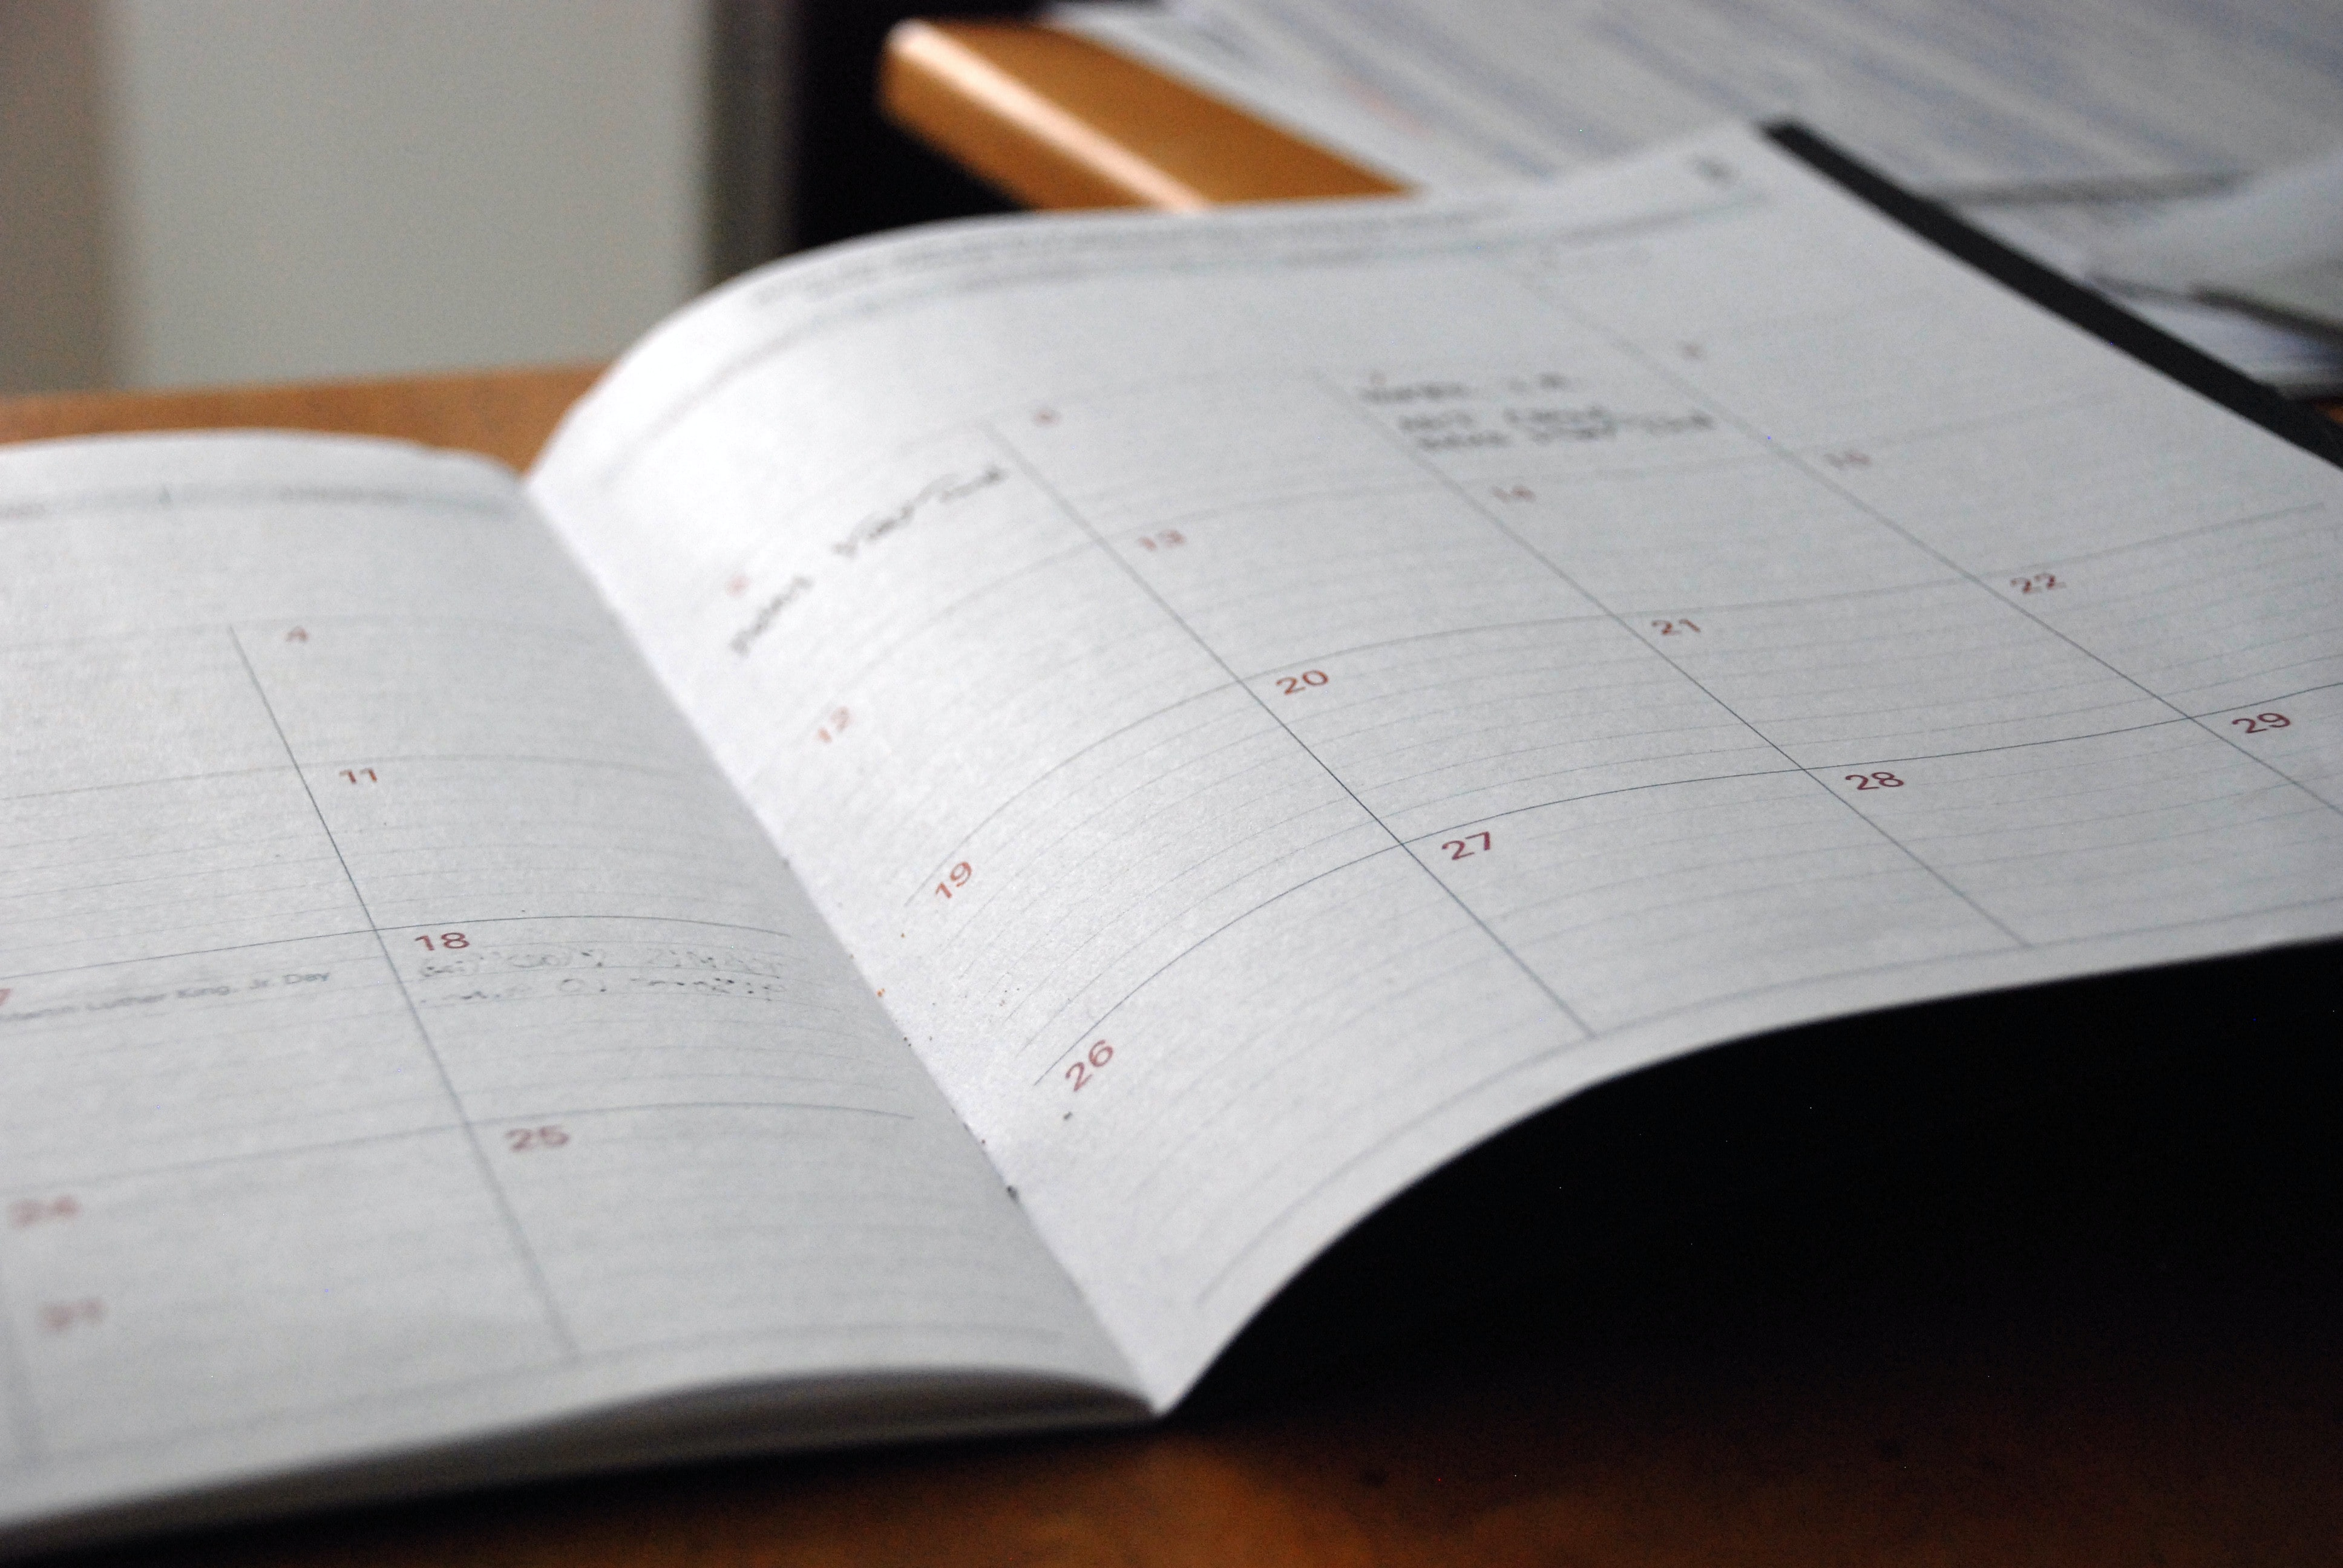 calender open on a table